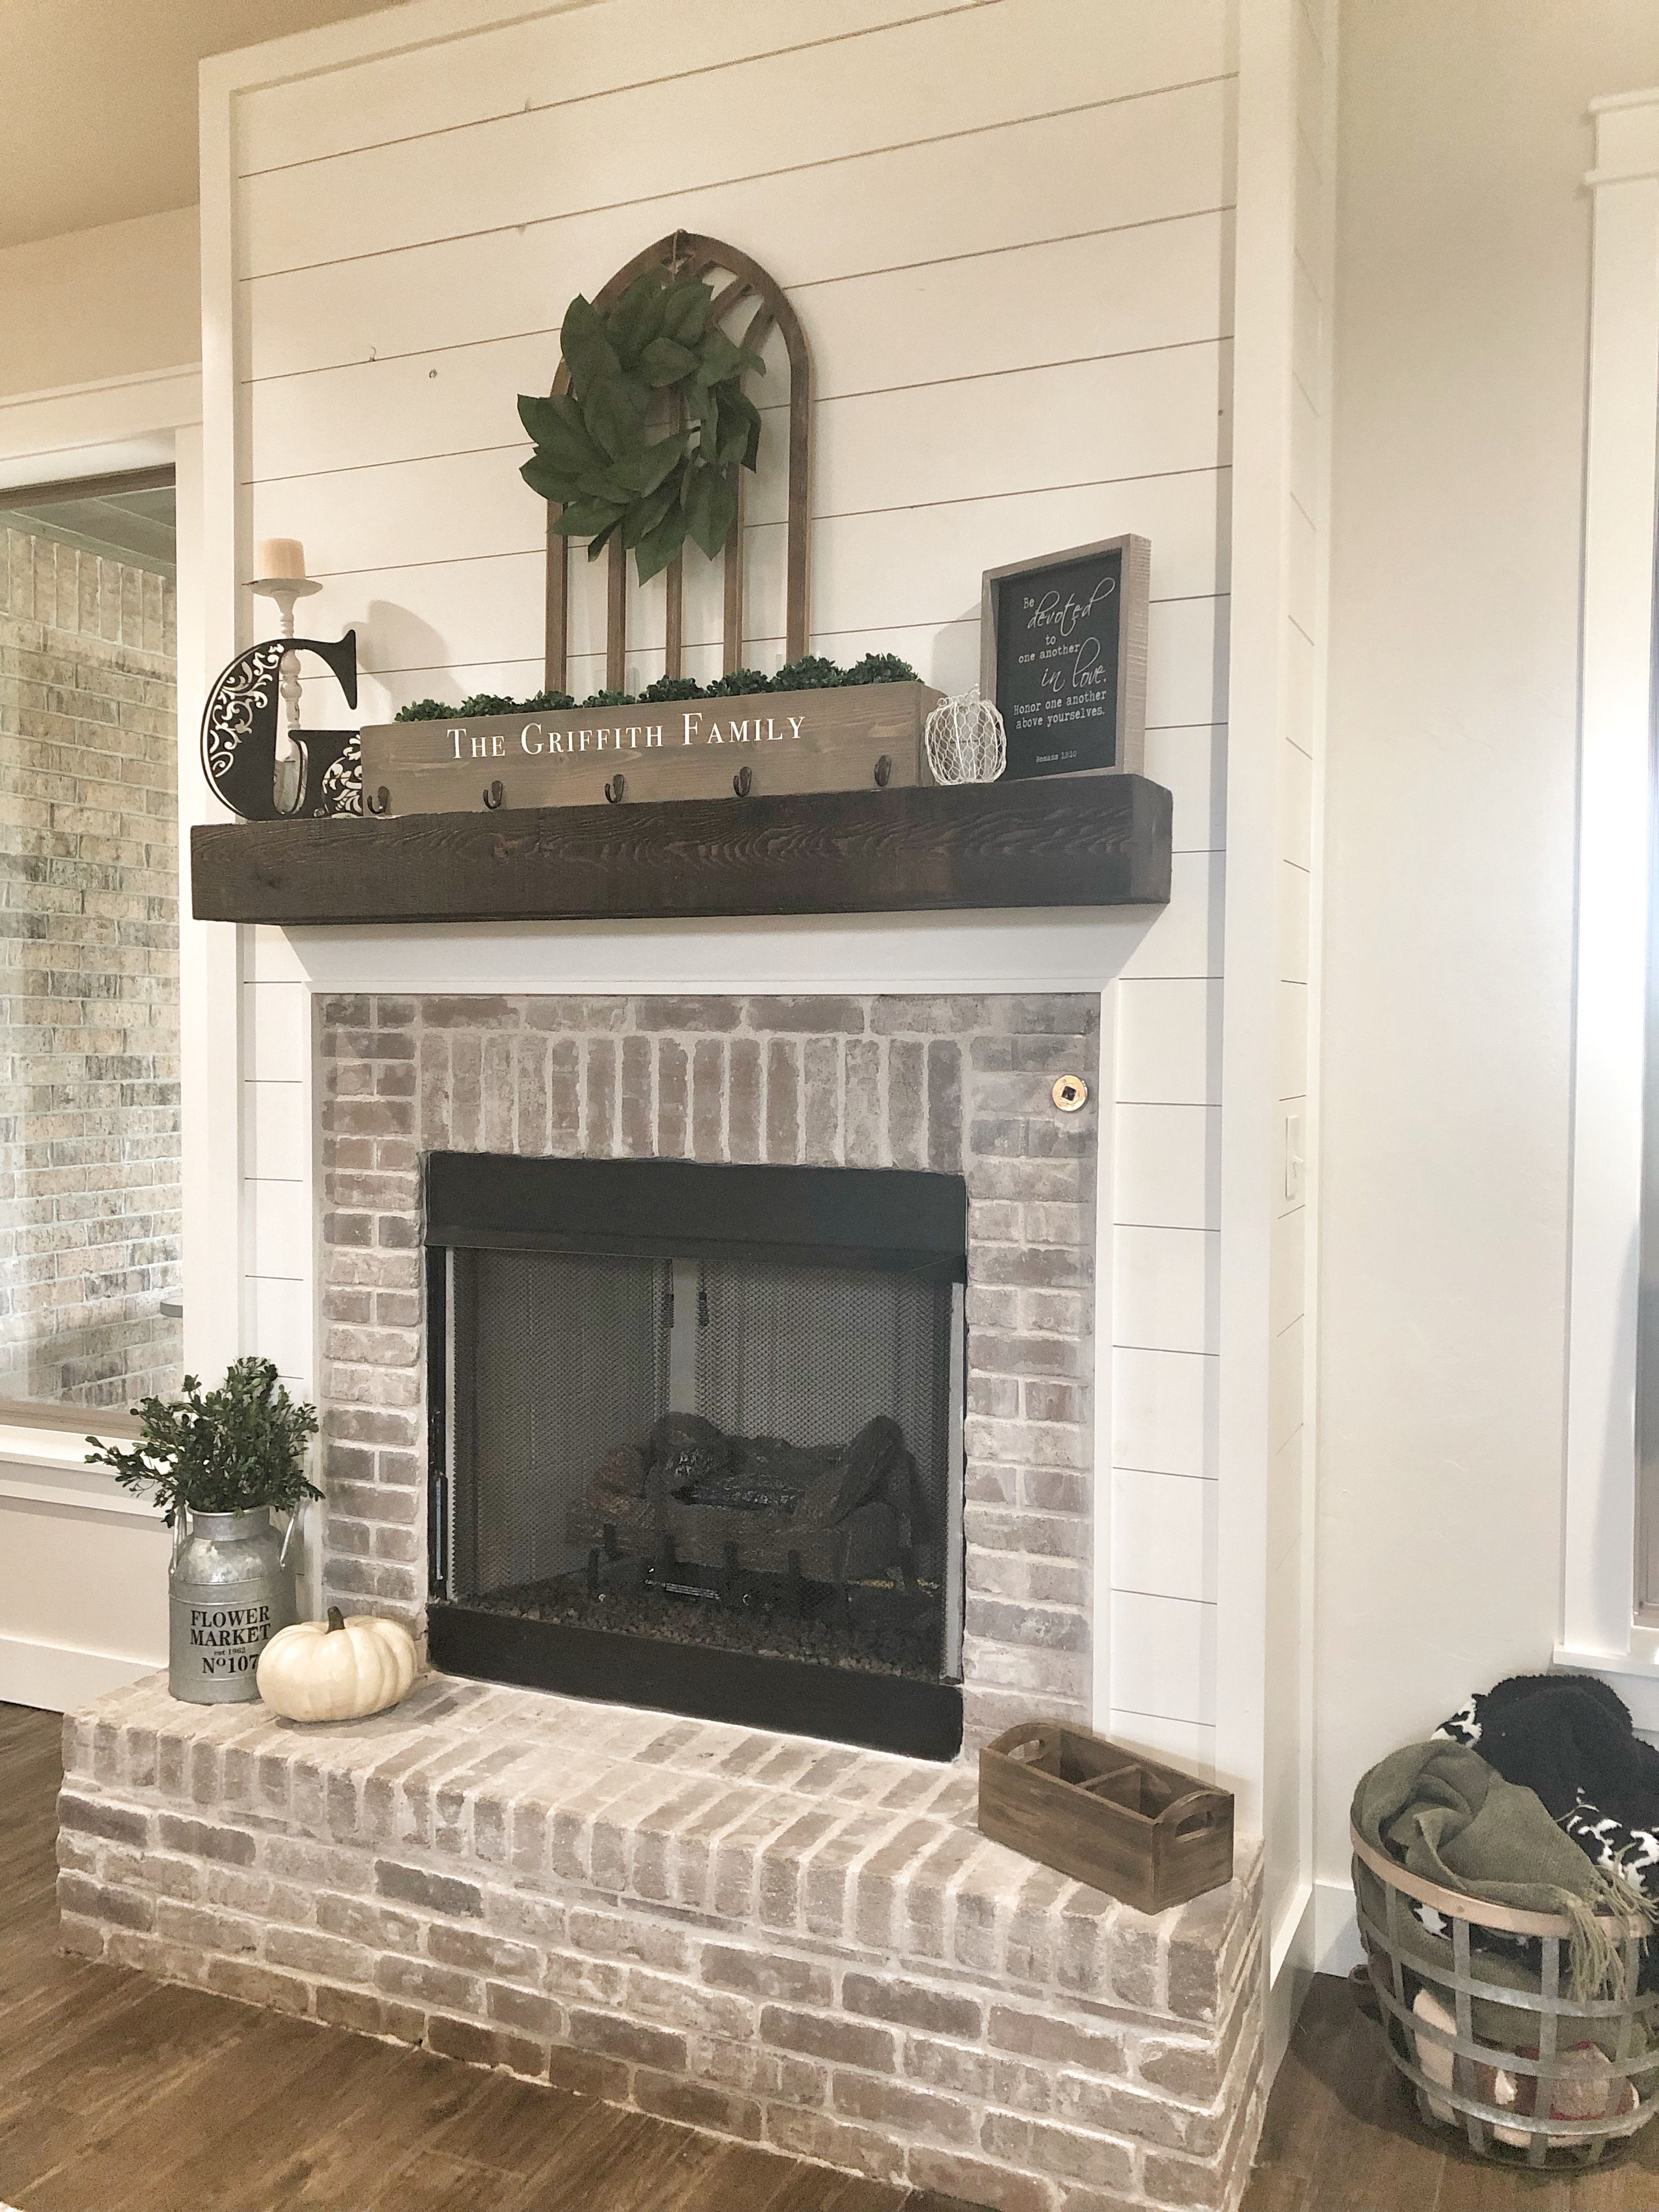 Shiplap Fireplace With Brick Surround And Hearth Modern Design In 2020 Shiplap Fireplace Brick Fireplace Makeover Diy Shiplap Fireplace